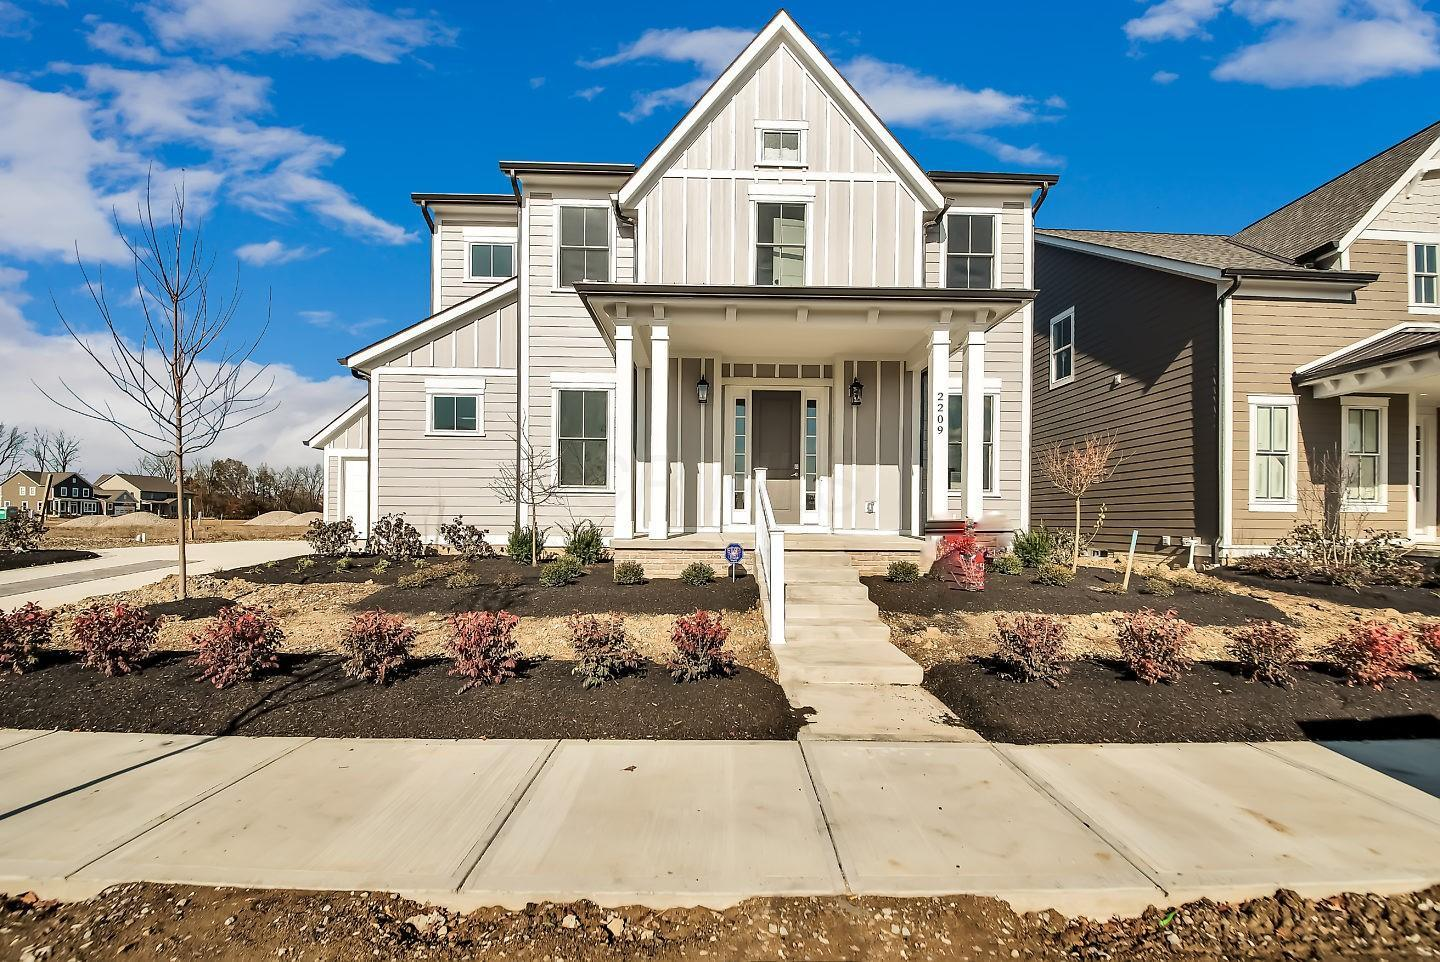 Photo of 2209 Red Oak Street, Lewis Center, OH 43035